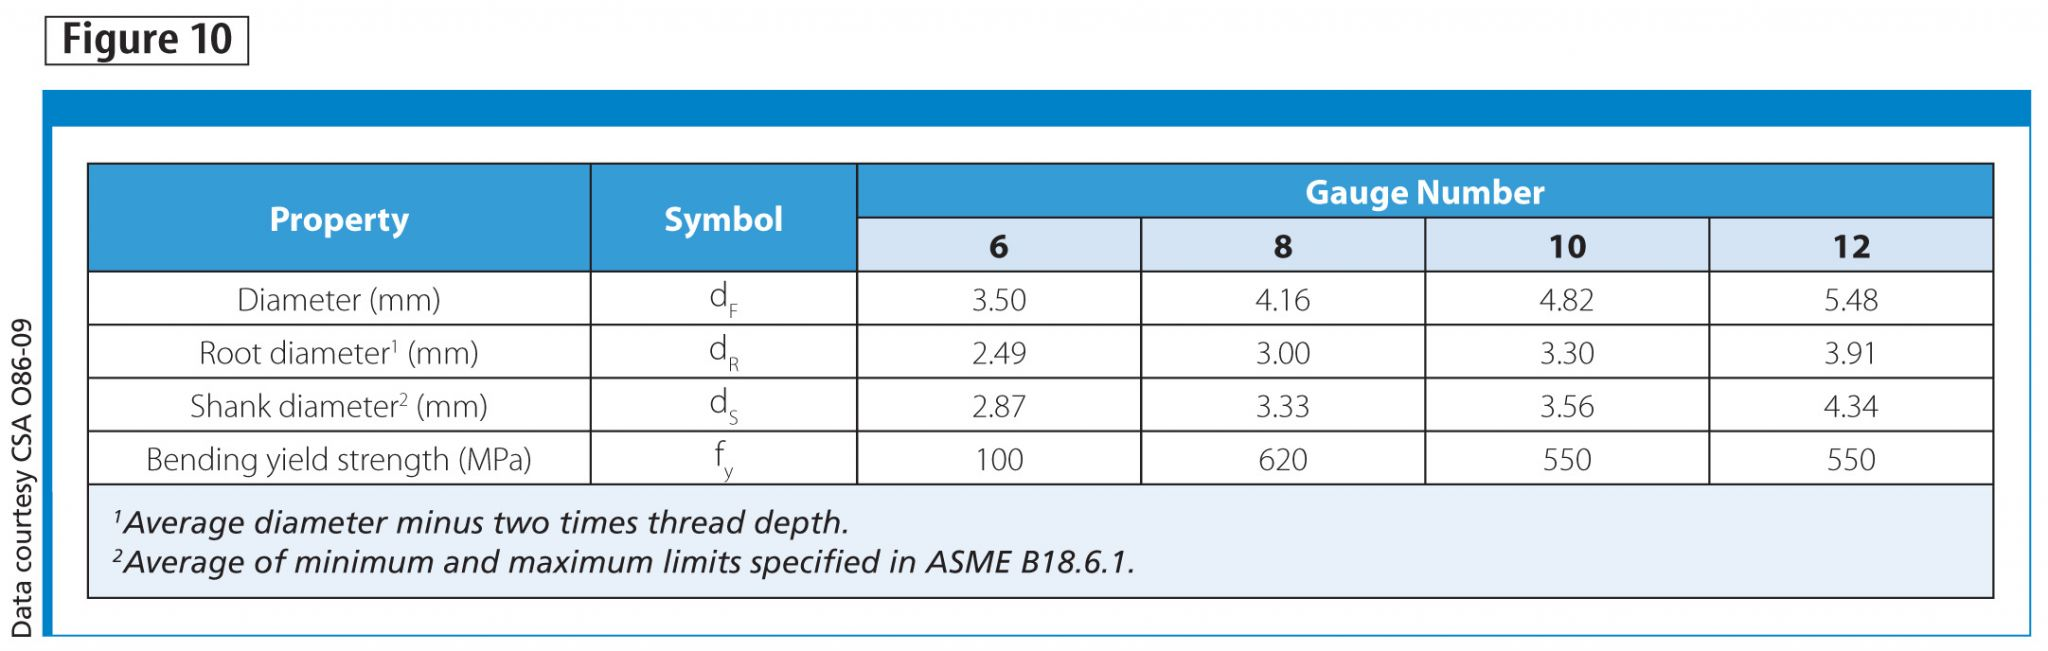 Requirements for ASME wood screws cited in CSA O86-09, Table 10.11.1.